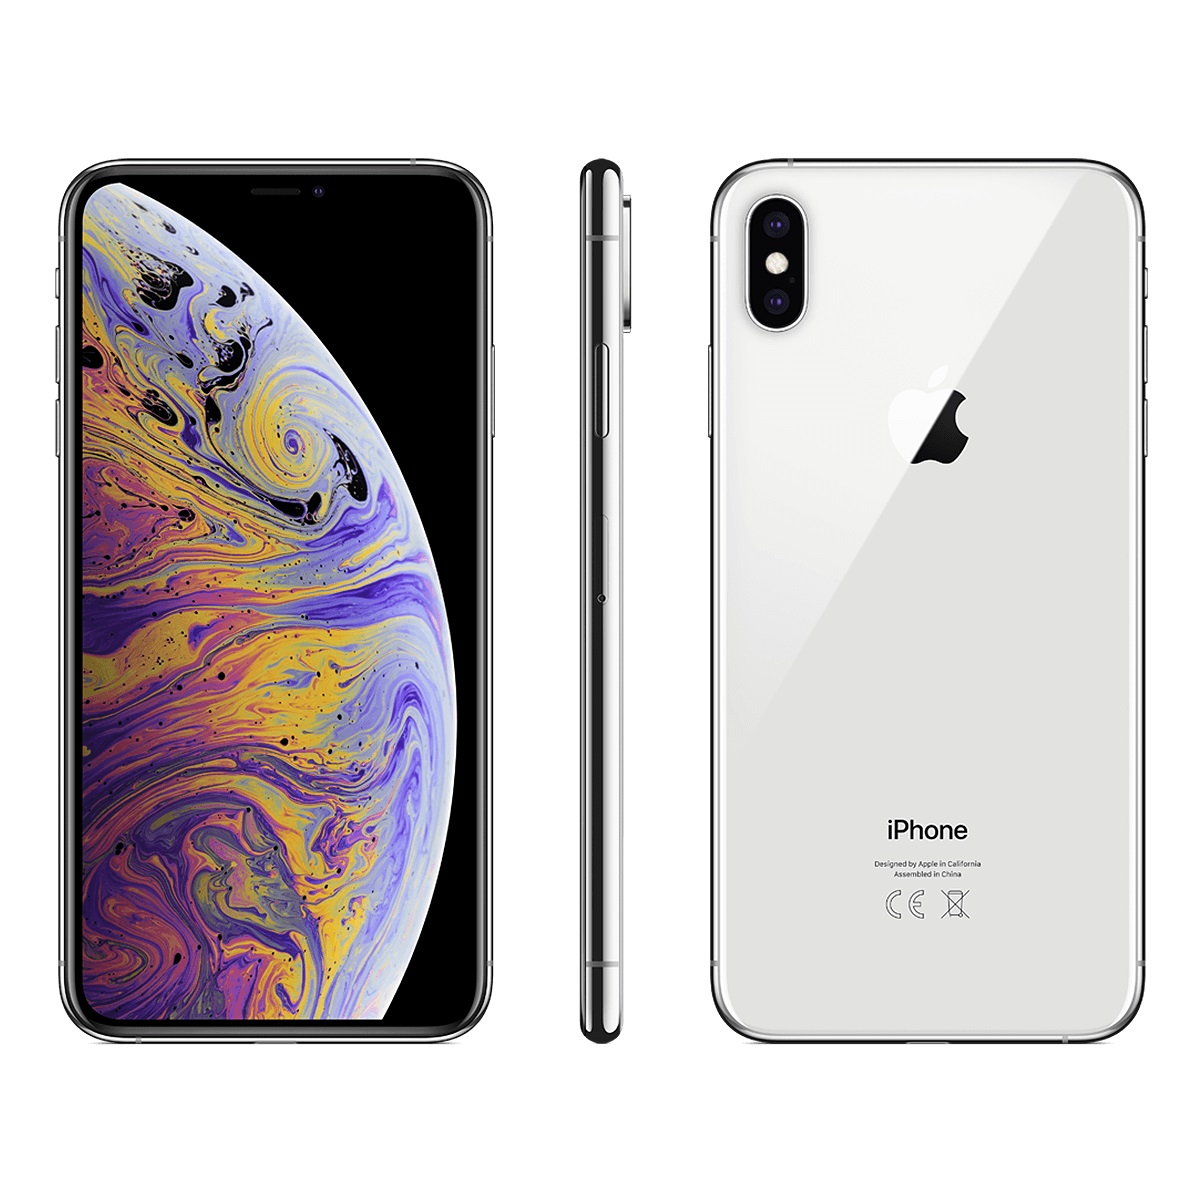 Image of Apple iPhone XS 256GB Dual sim (nano-SIM & eSIM) A1920 With Generic Tempered Glass Screen Protector- Silver